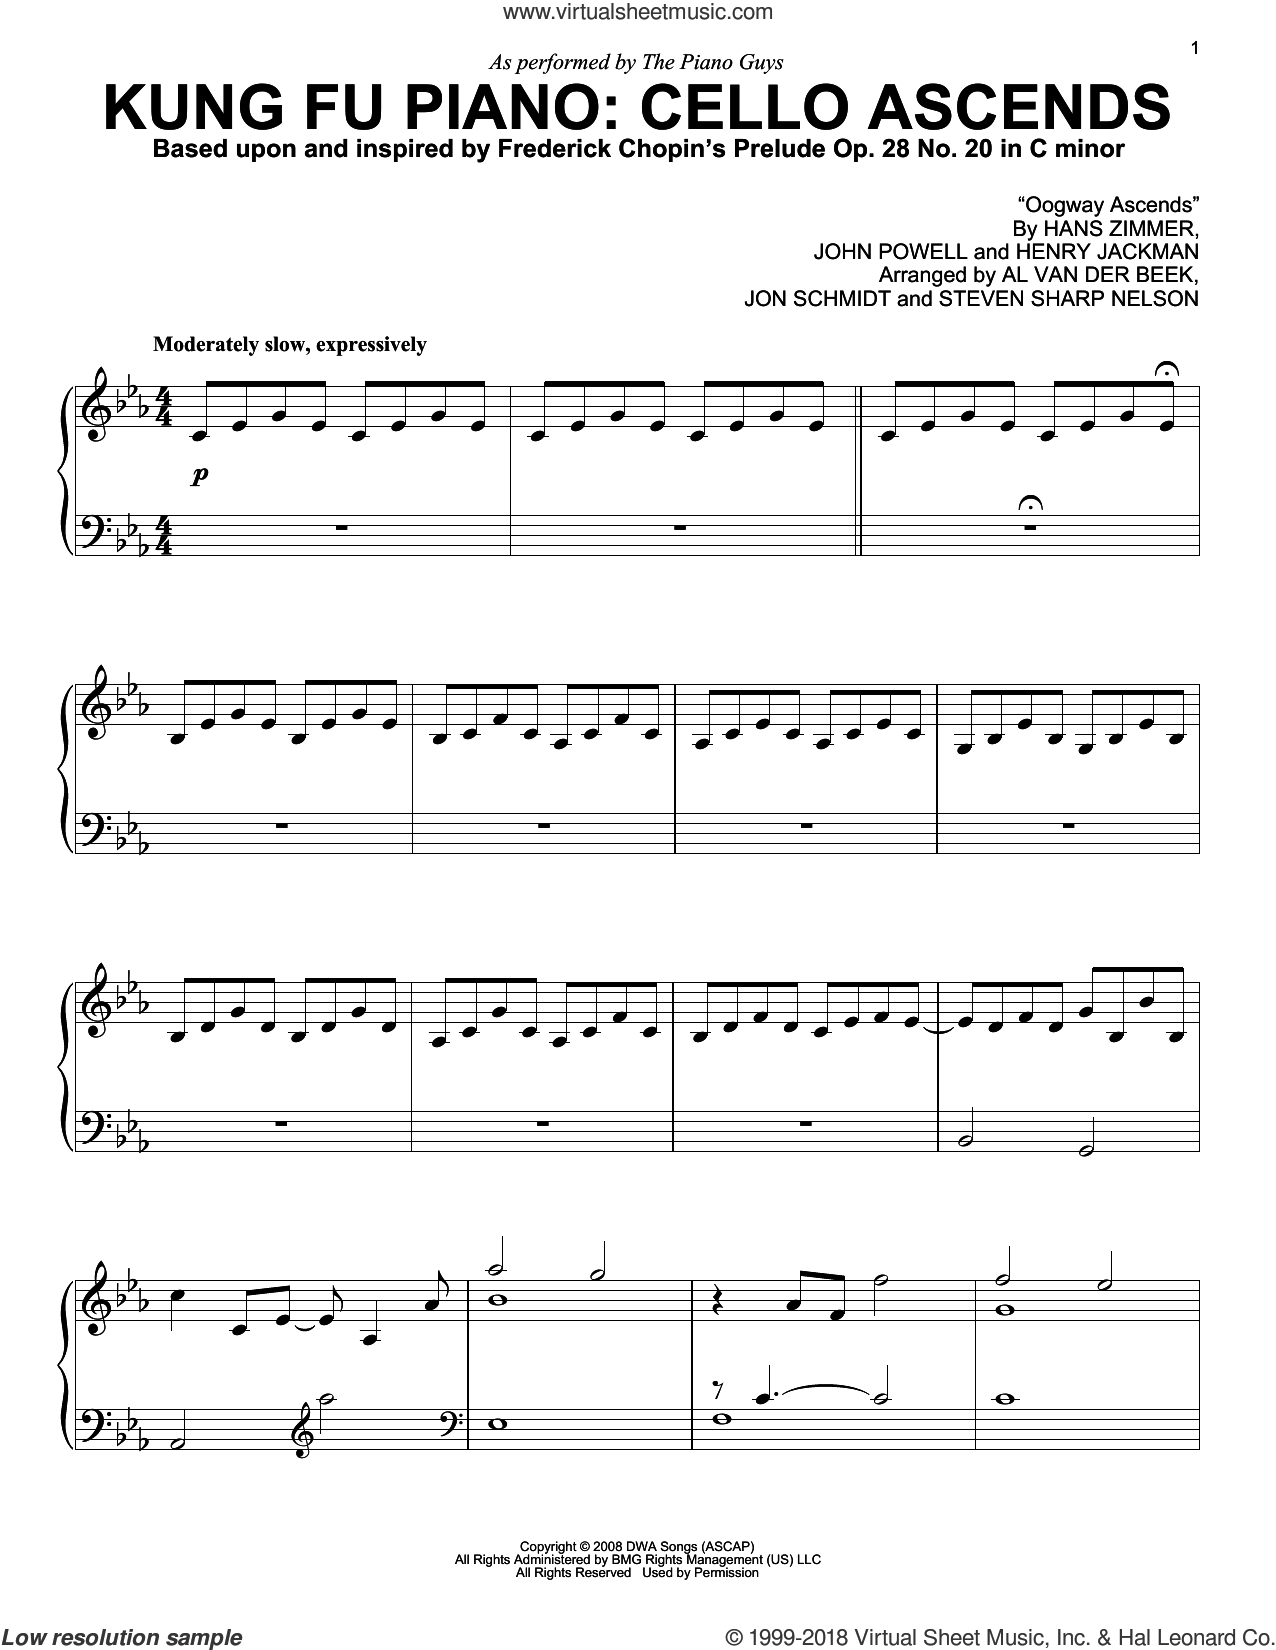 Kung Fu Piano: Cello Ascends sheet music for piano solo by The Piano Guys, Al van der Beek, Frederick Chopin, Hans Zimmer, Henry Jackman, John Powell, Jon Schmidt and Steven Sharp Nelson, intermediate skill level